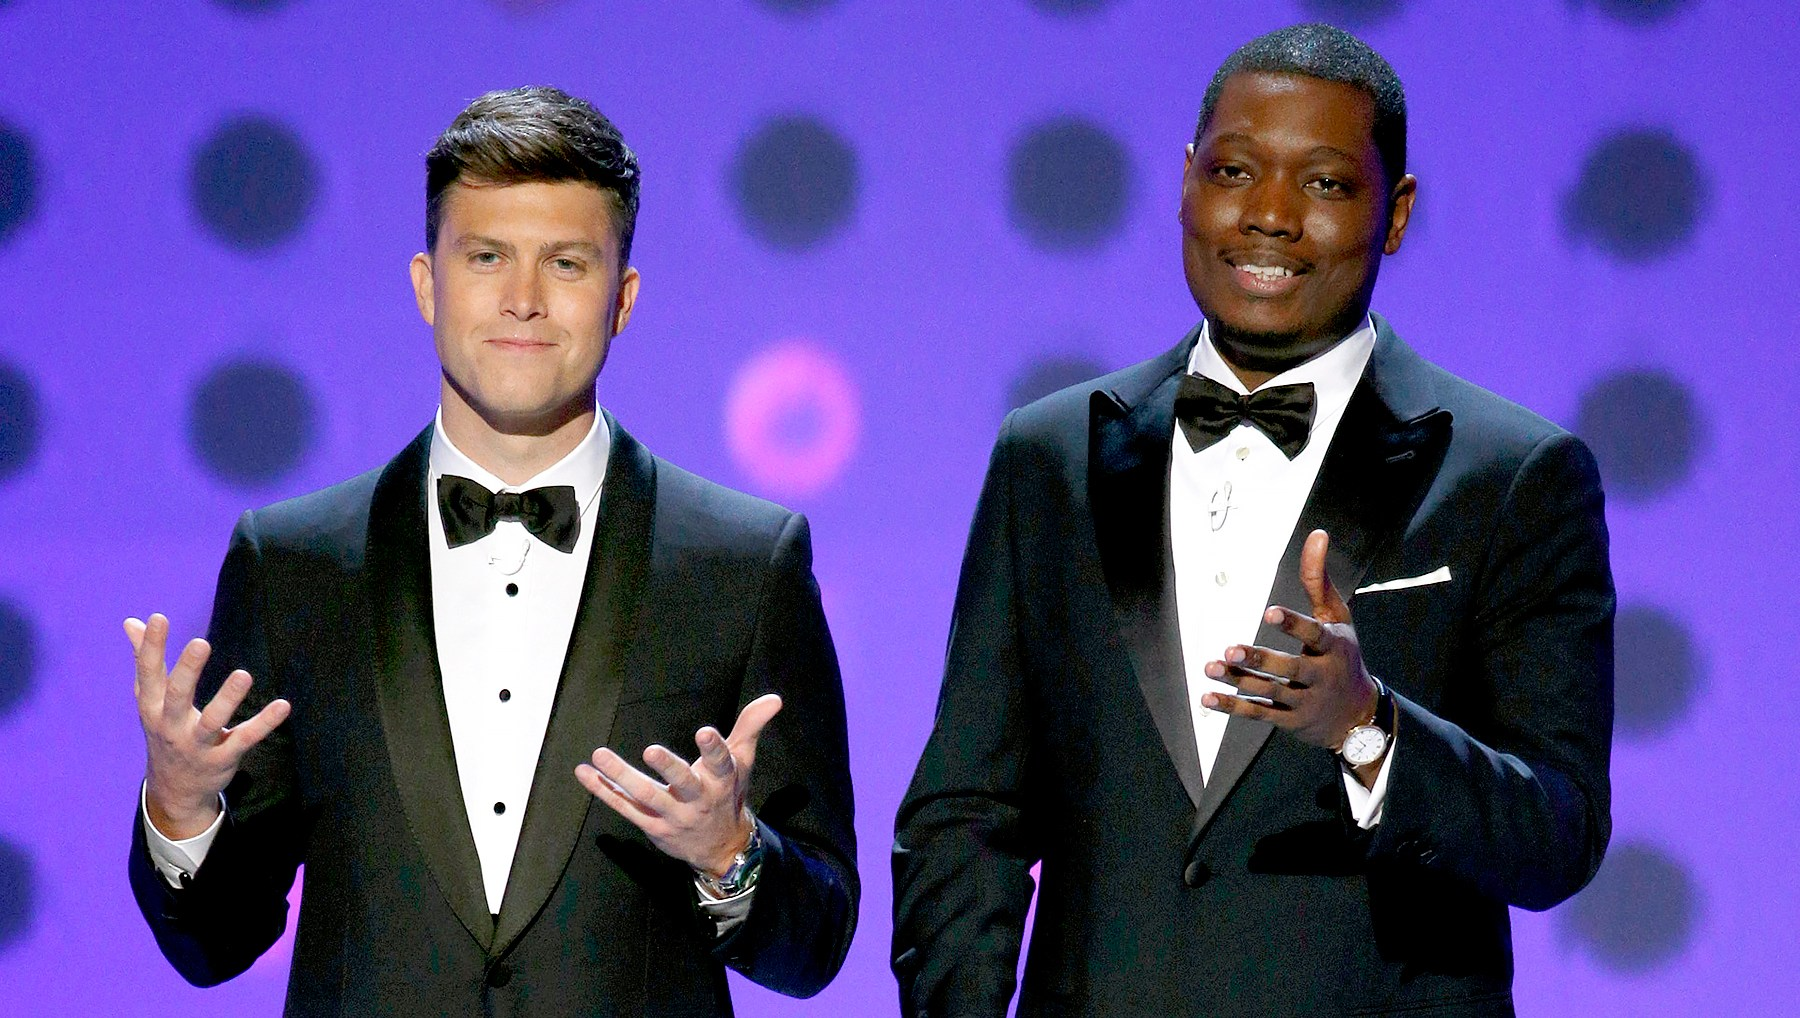 Michael-Che-and-Colin-Jost-emmys-2018